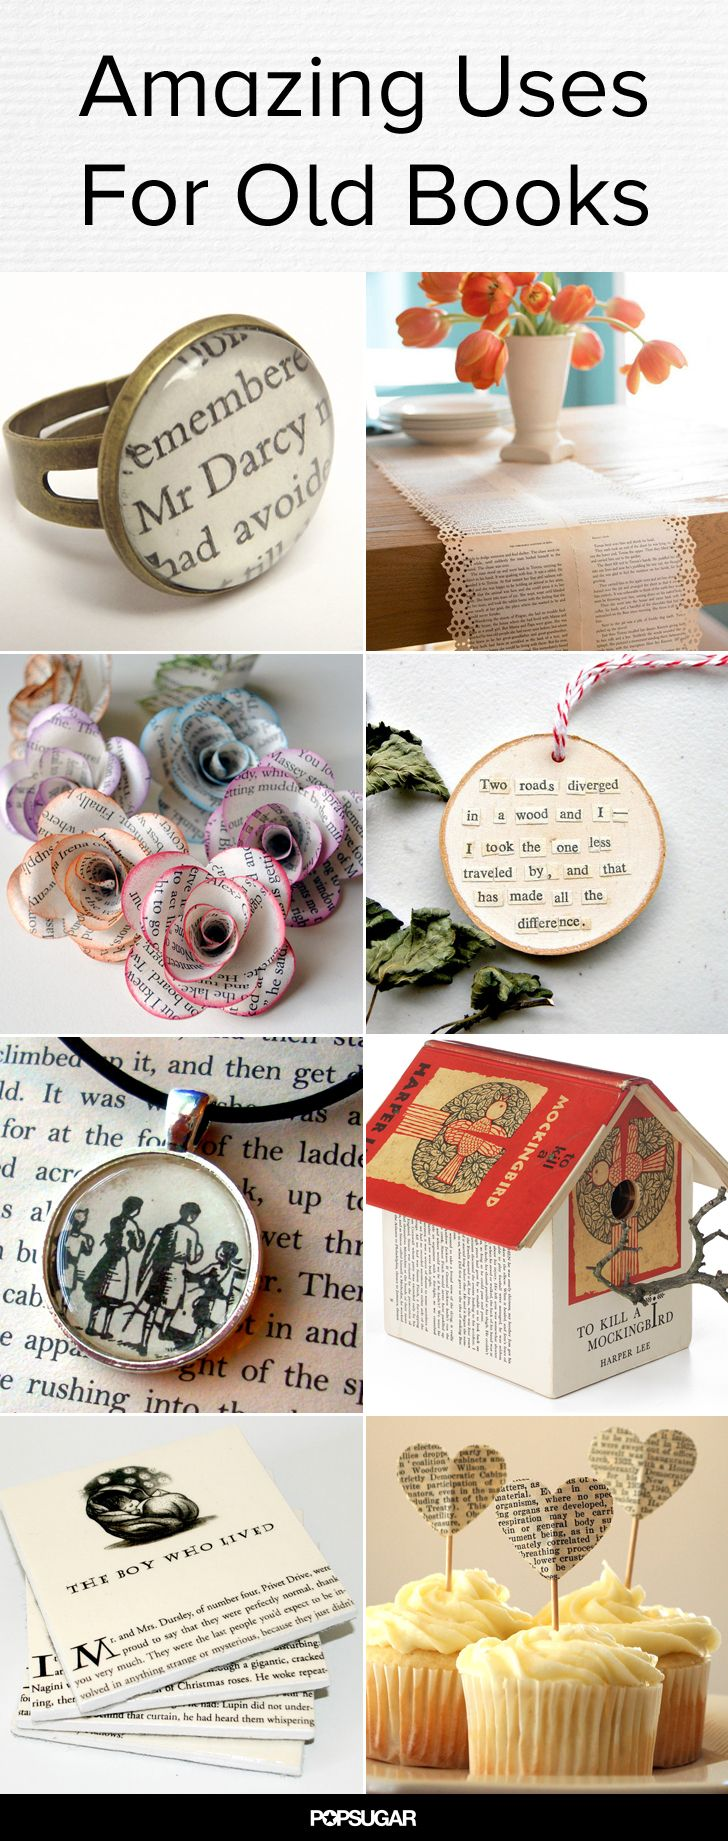 #papercrafting #repurposing and #recycling ideas - Upcycle your old books into lovely decor and jewelry!